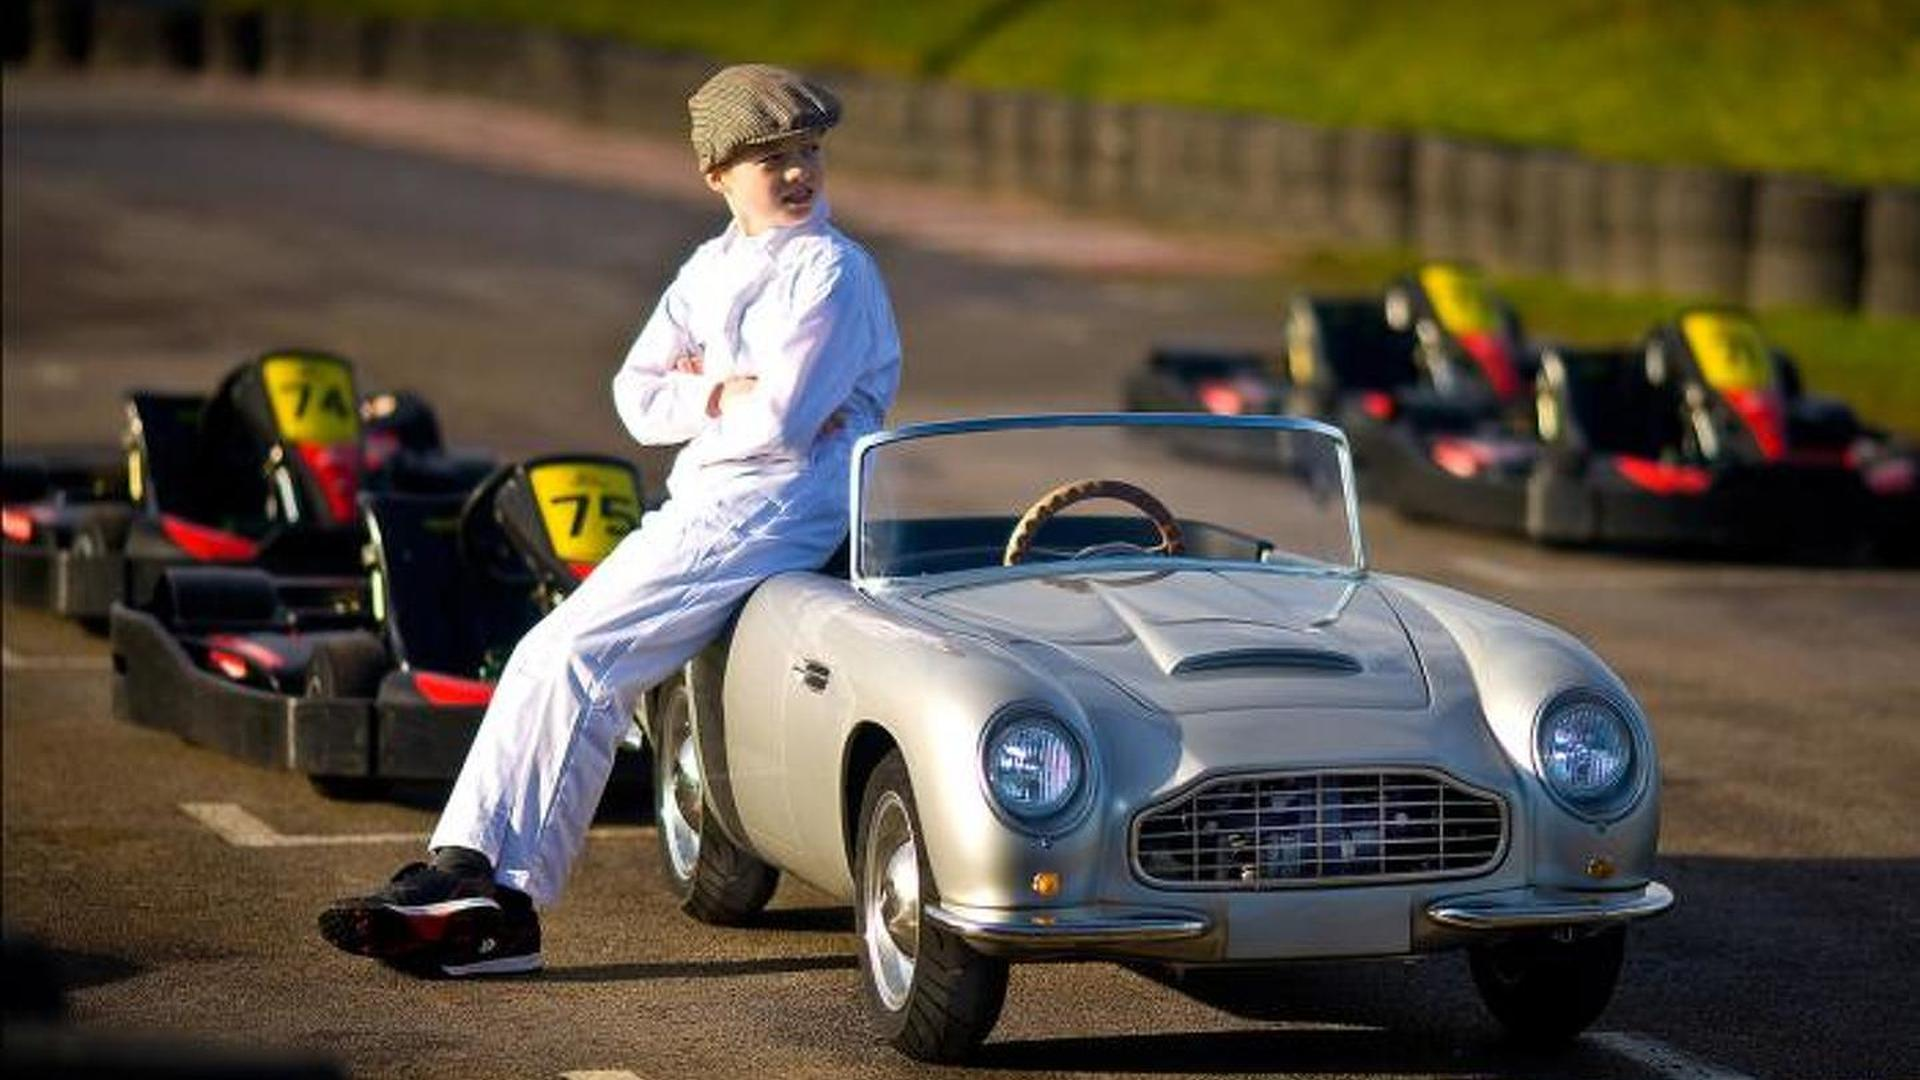 Aston Martin Db Convertible Junior Unveiled A 16 500 Gbp Toy Car That Can Do 46 Mph Video